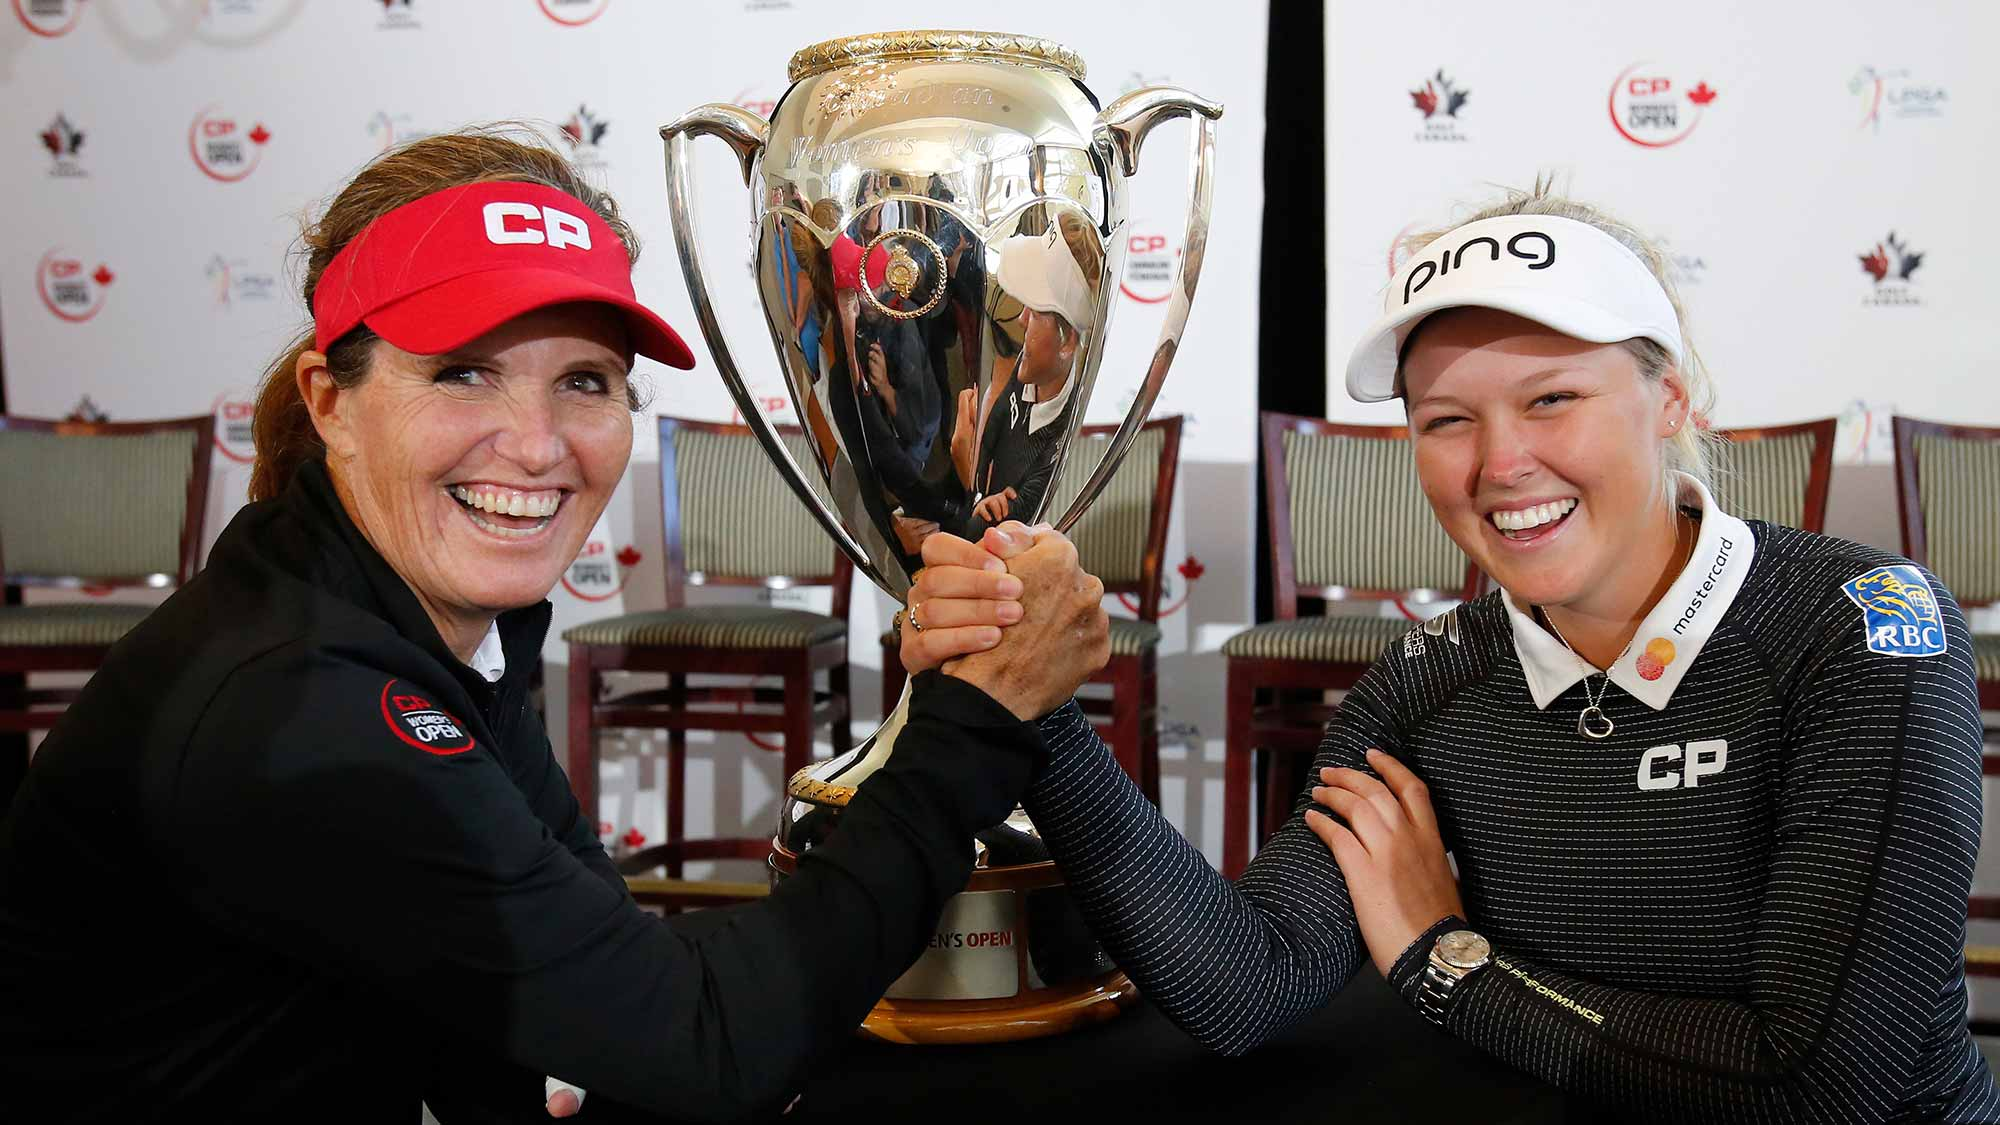 Henderson Canadian Favorite, Kane Playing in 27th Open and more From Ottawa